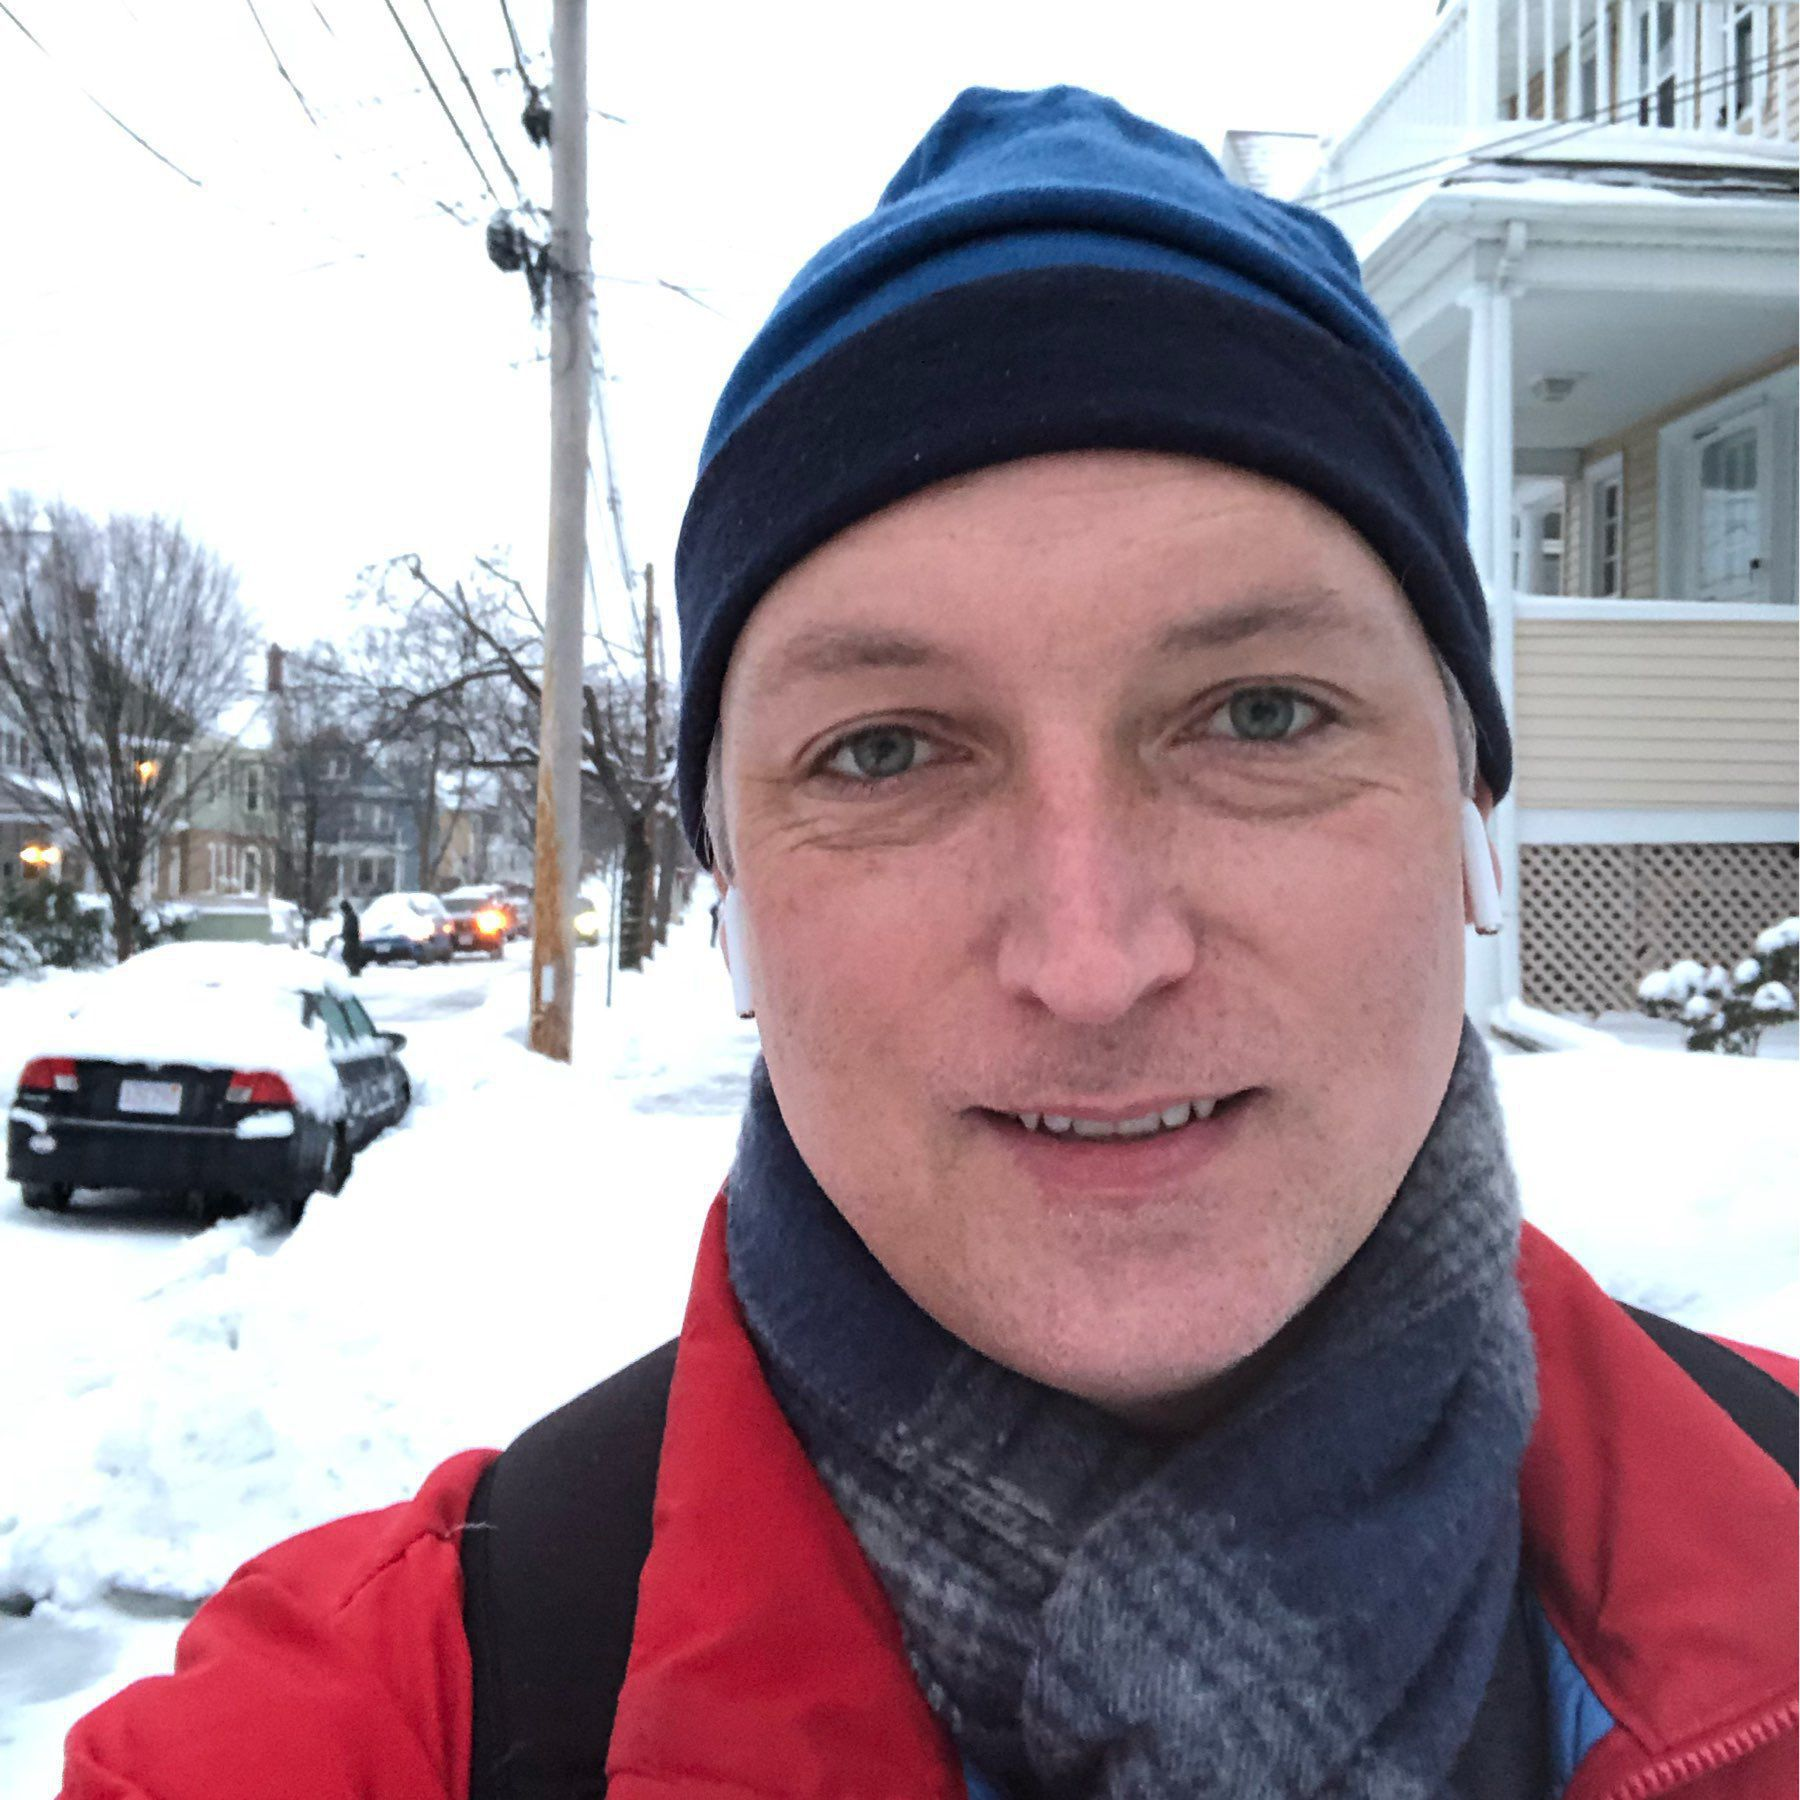 Self portrait against a backdrop of snow covered street, cars, and houses.